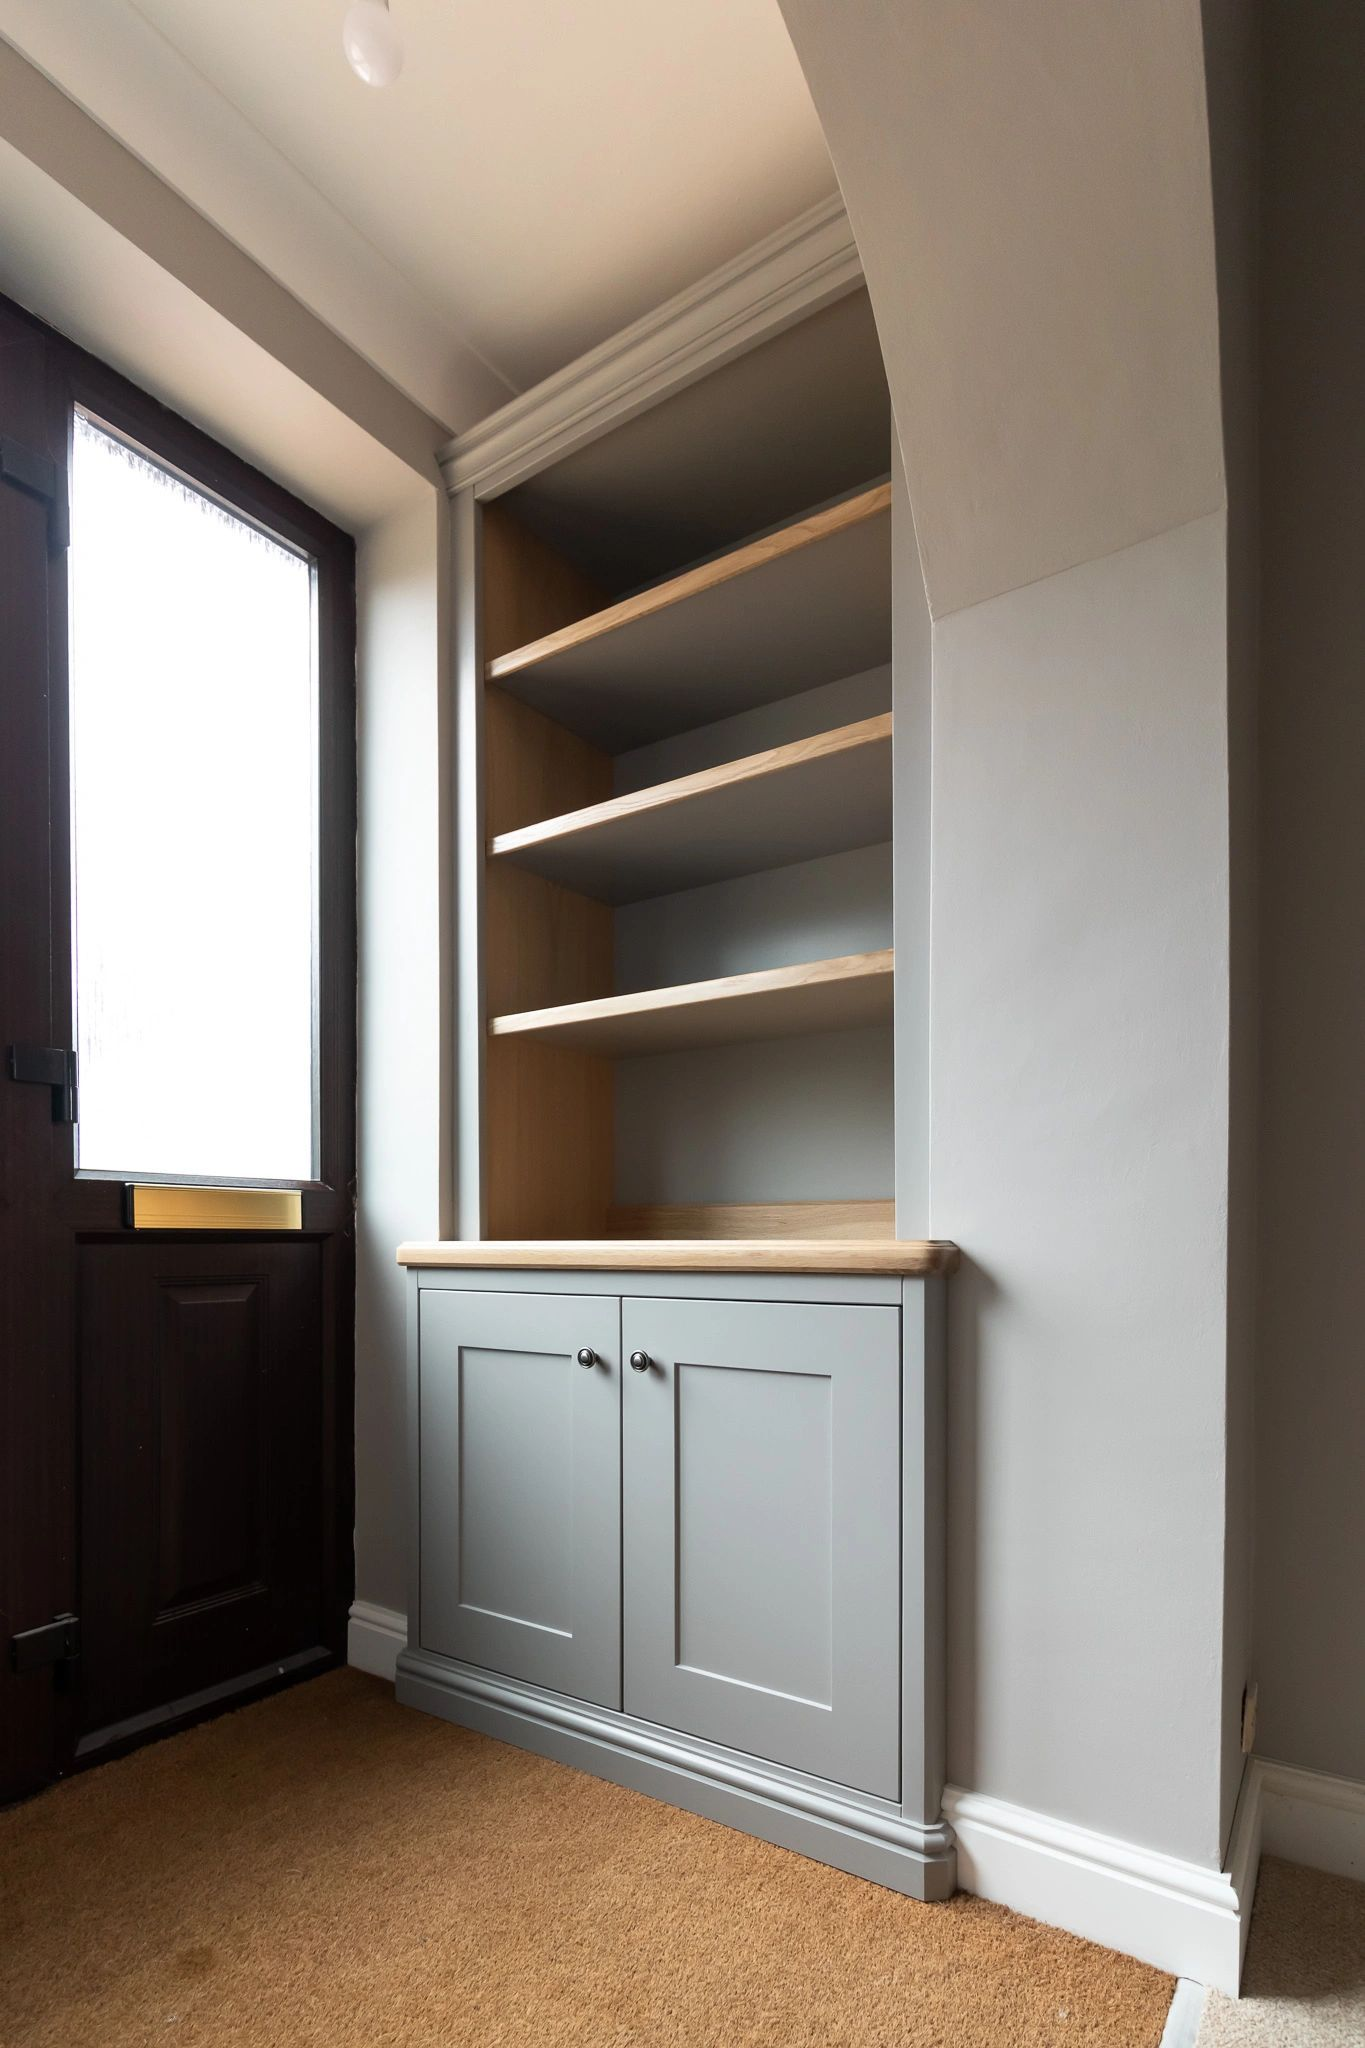 Meadow alcove pics TW Bespoke in 2020 Alcove